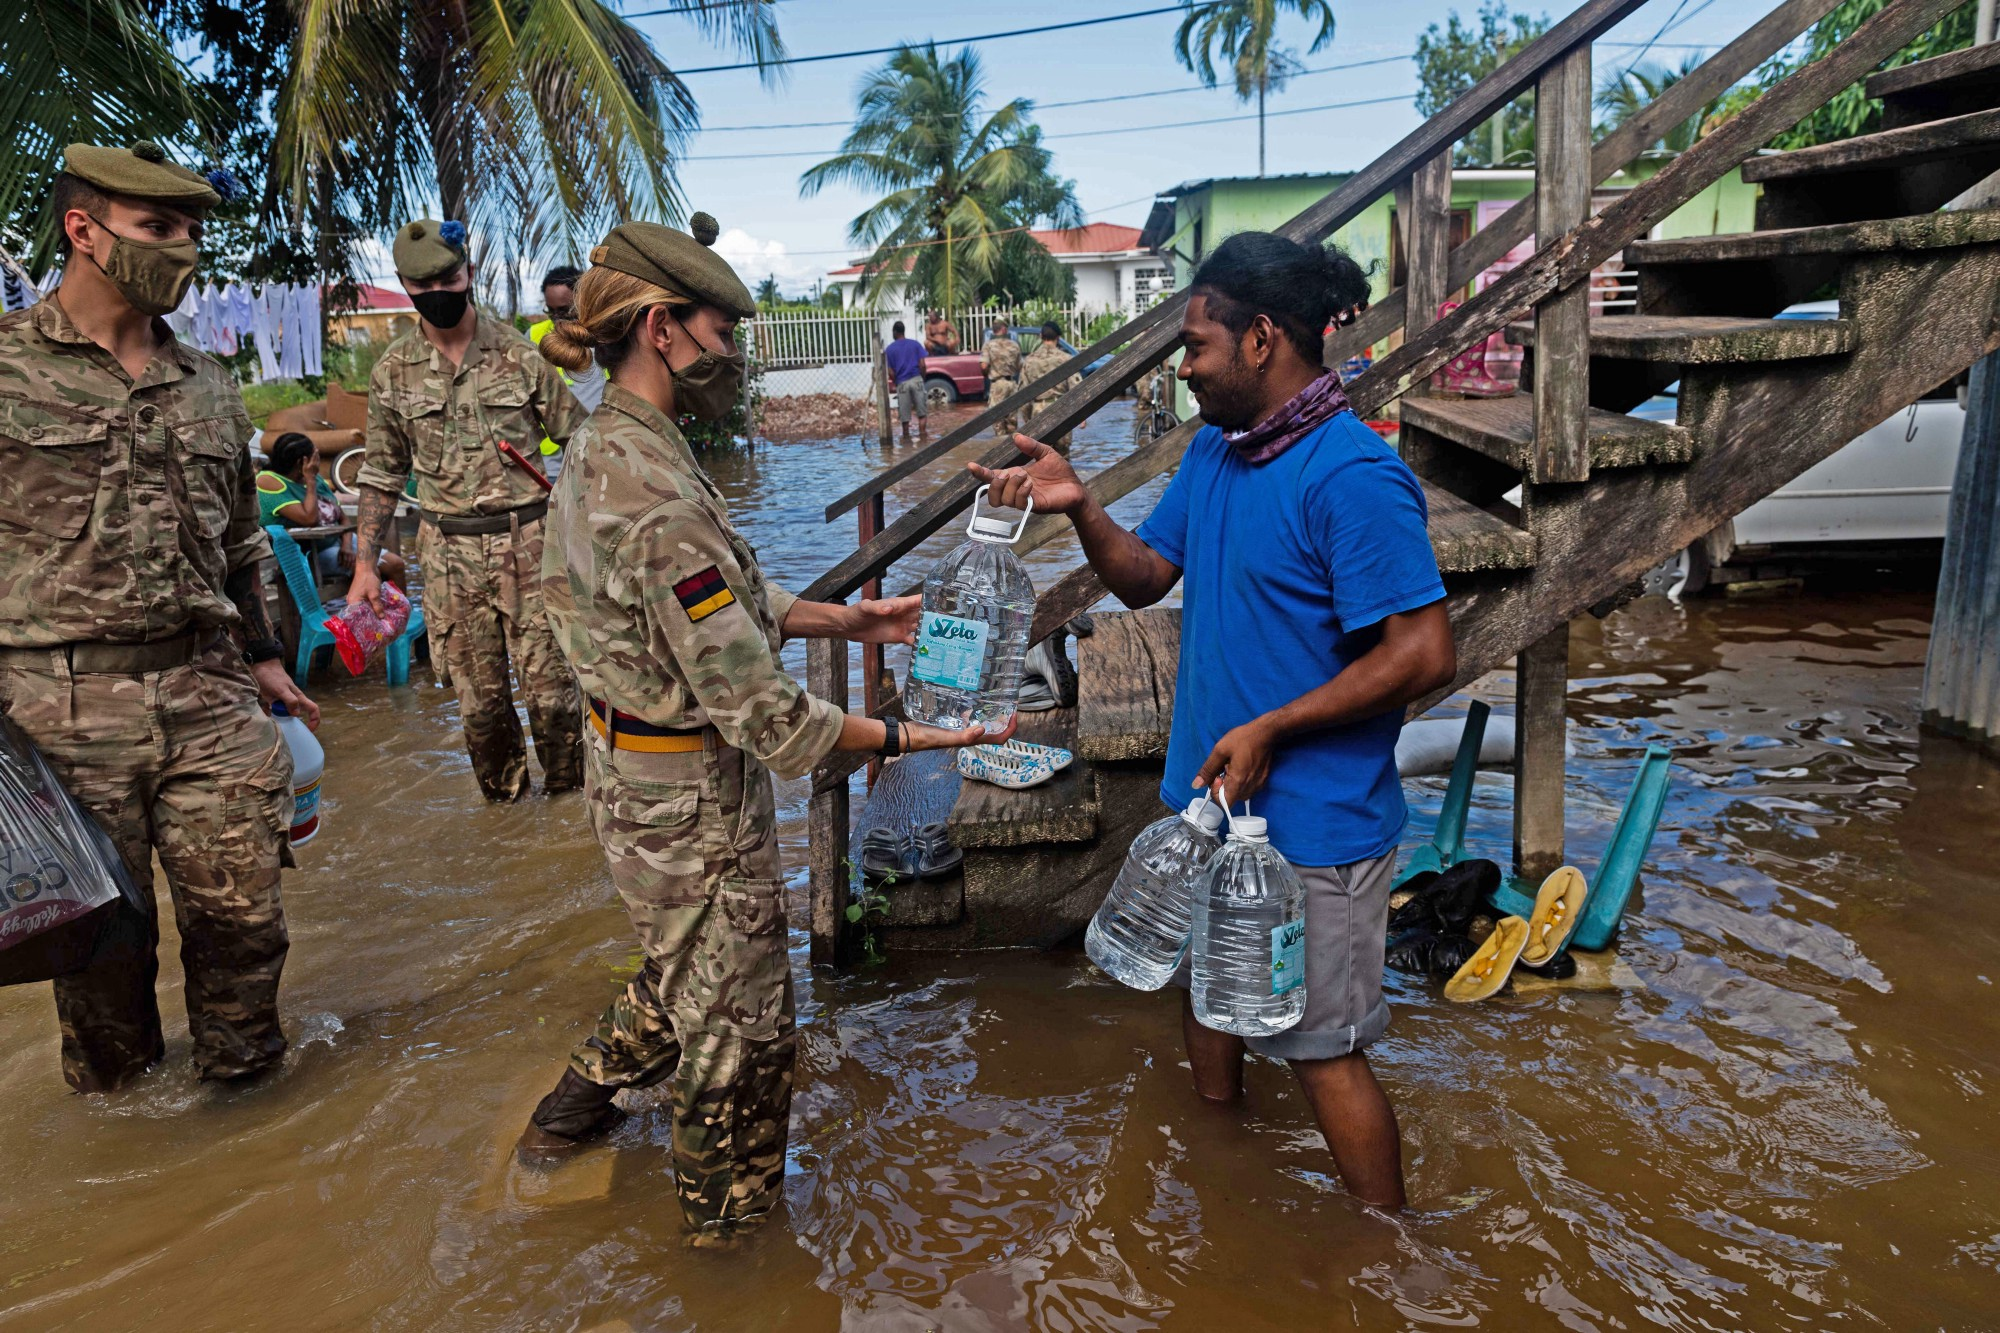 Humanitarian aid and disaster relief in the Caribbean.